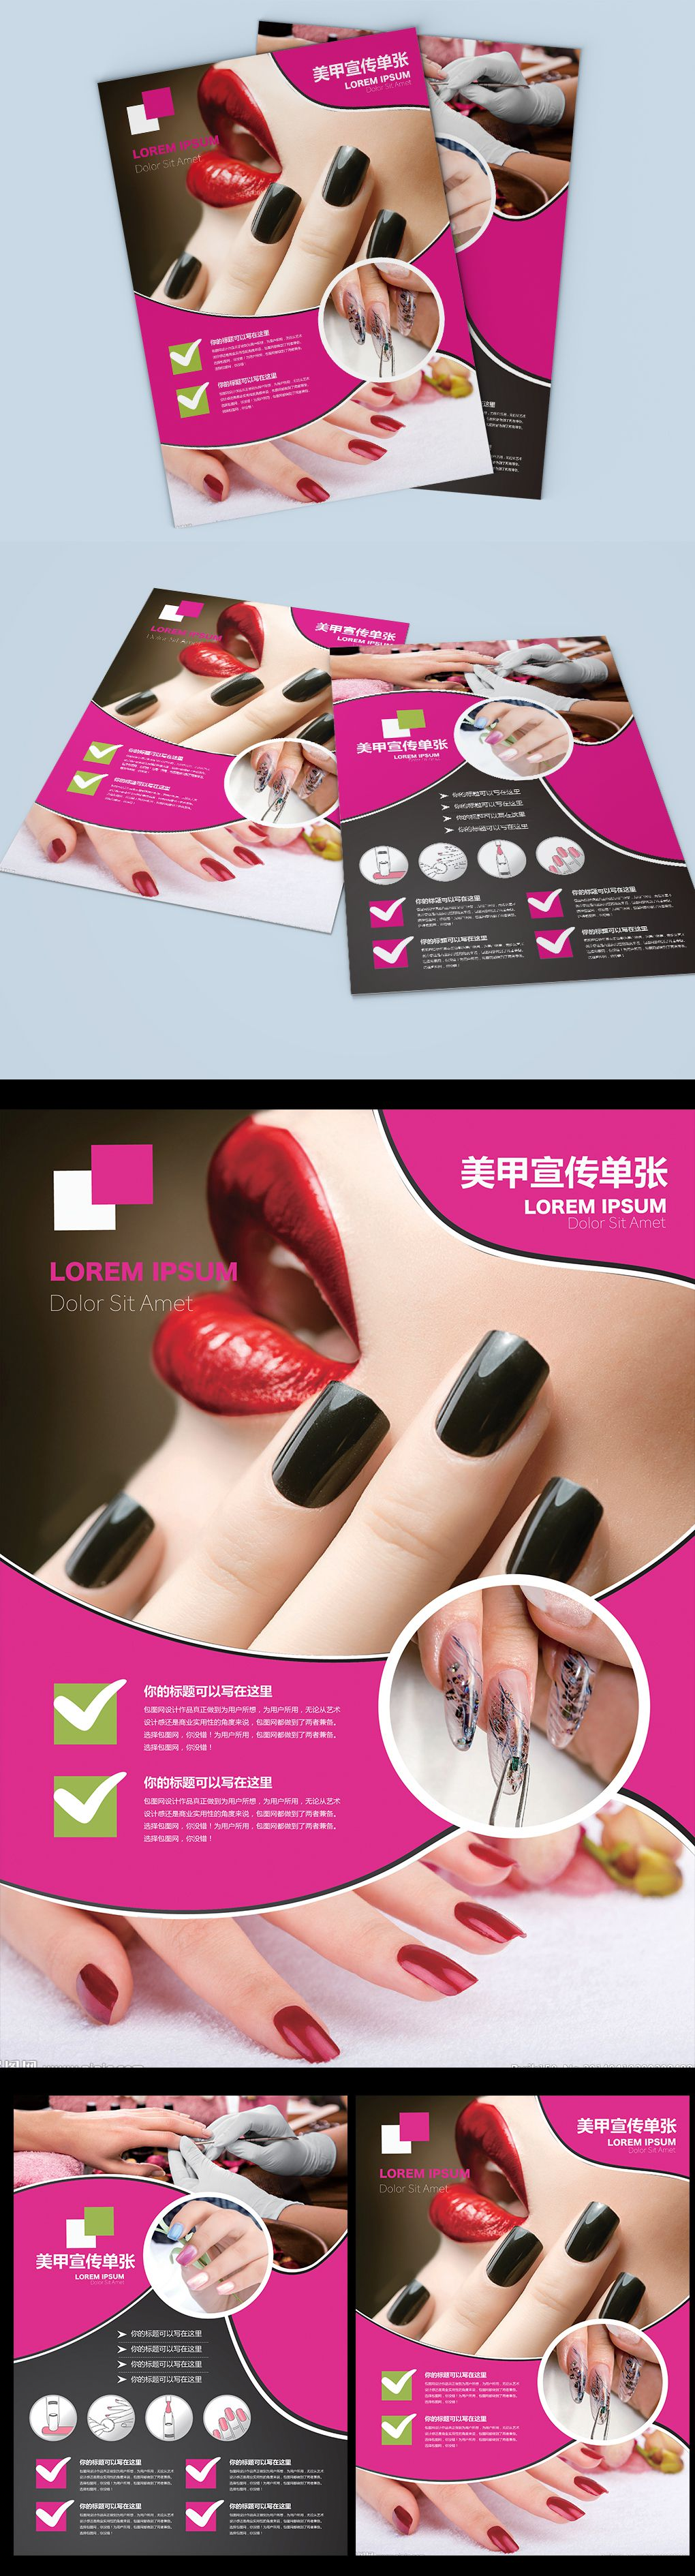 to-roi-spa-nail 60k888piCTeU Tờ rơi Spa nail    Manage.vn